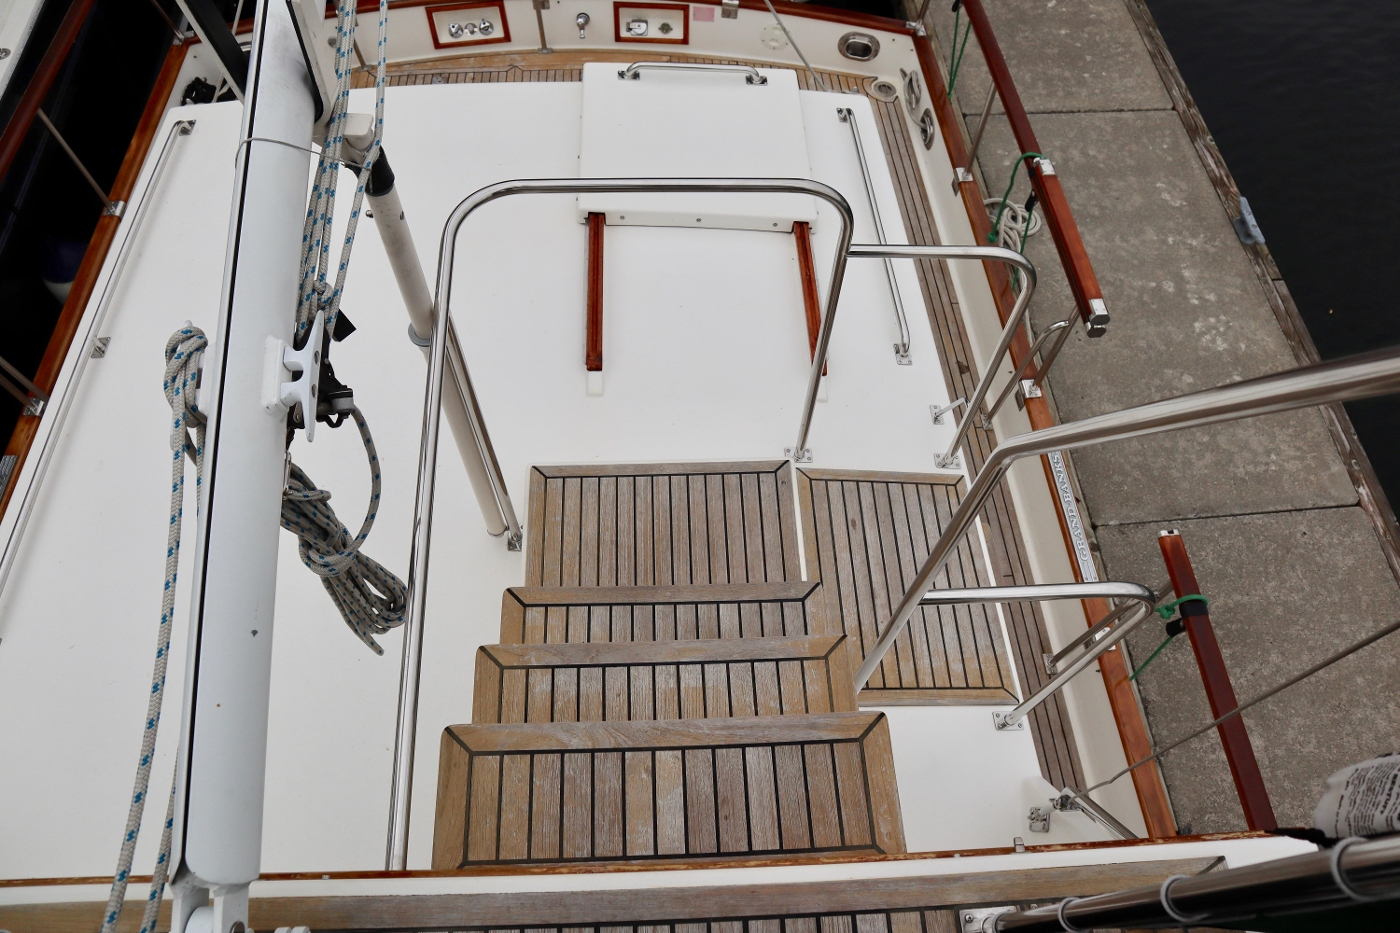 1995 Grand Banks 36 Classic, Aft Deck Stairs